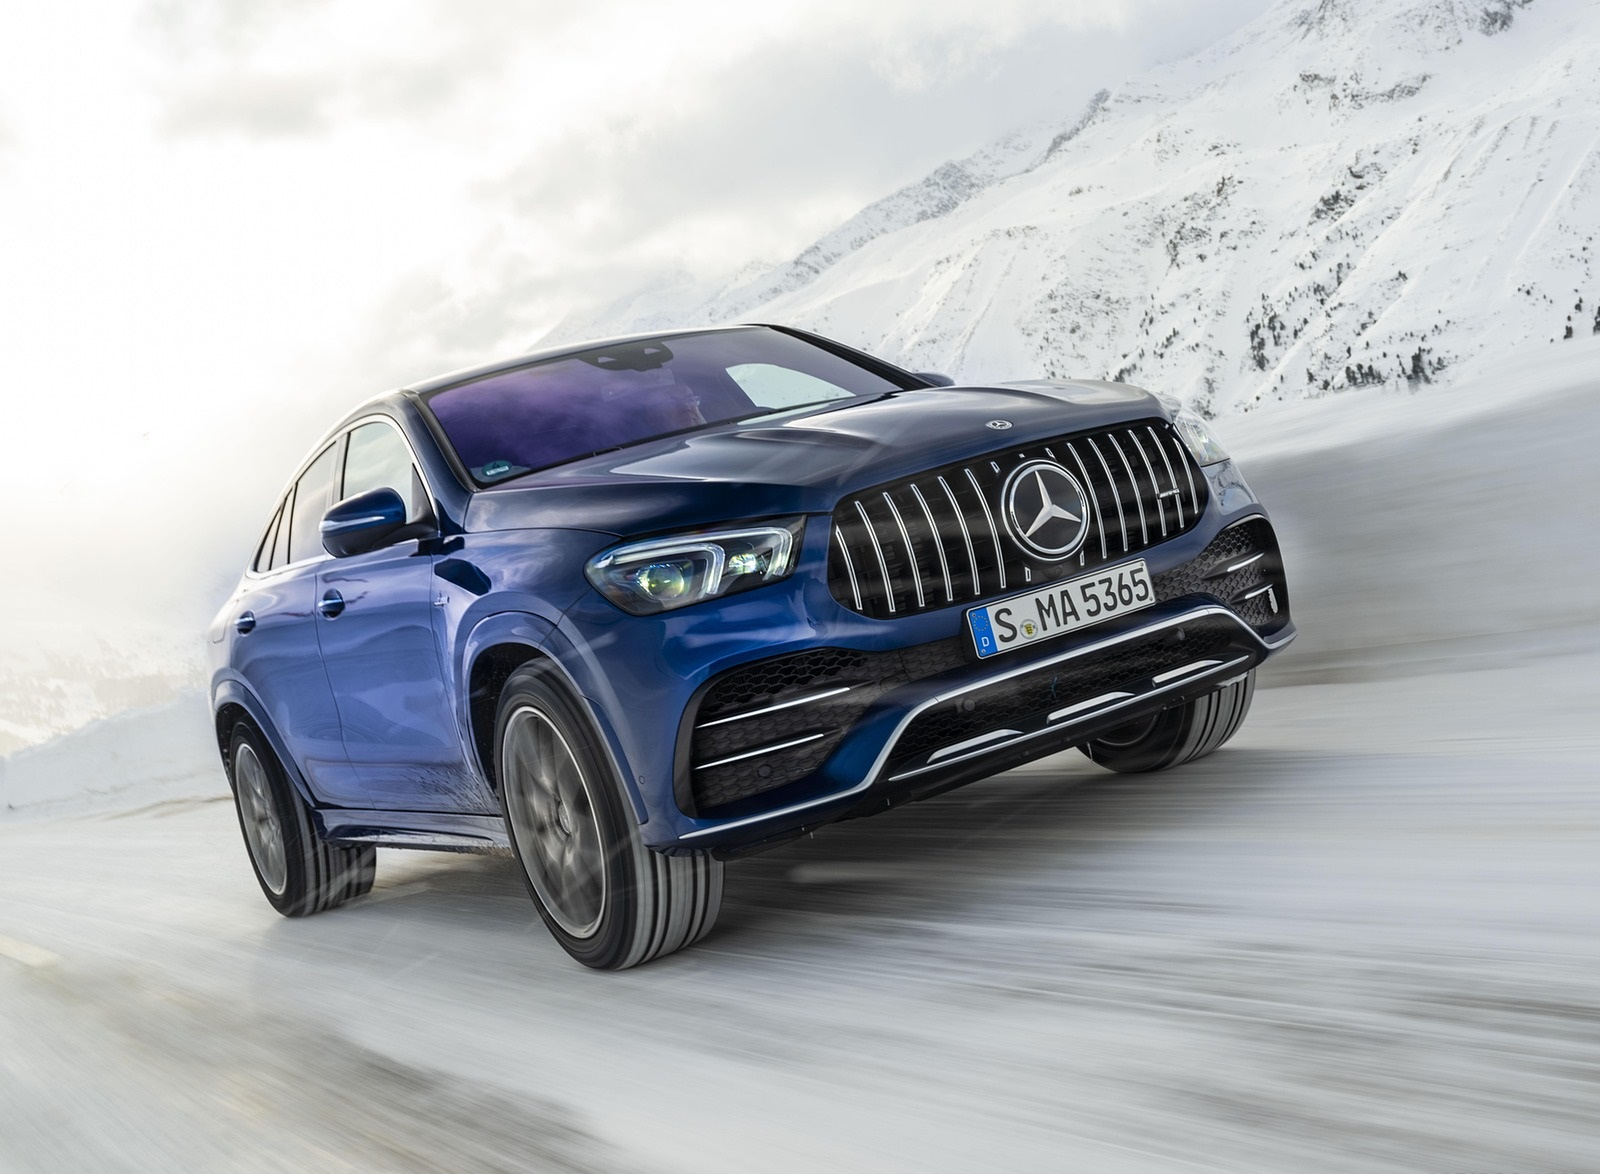 2021 Mercedes-AMG GLE 53 4MATIC Coupe (Color: Brilliant Blue Metallic) Front Three-Quarter Wallpapers (1)